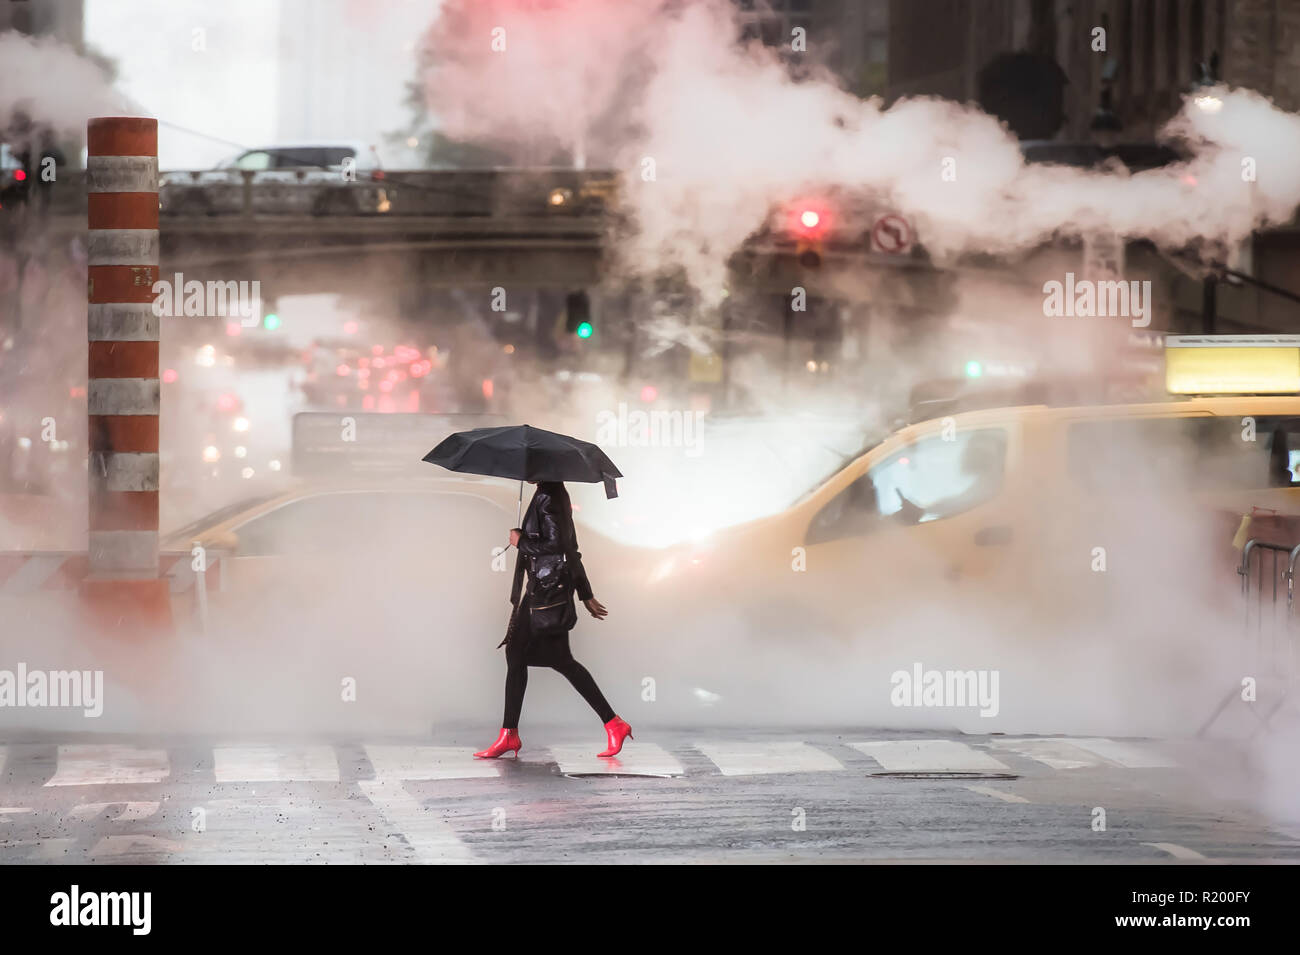 A woman with an umbrella and red high heels shoes is crossing the 42nd street in Manhattan. Taxi and steam coming out from from the manholes. - Stock Image